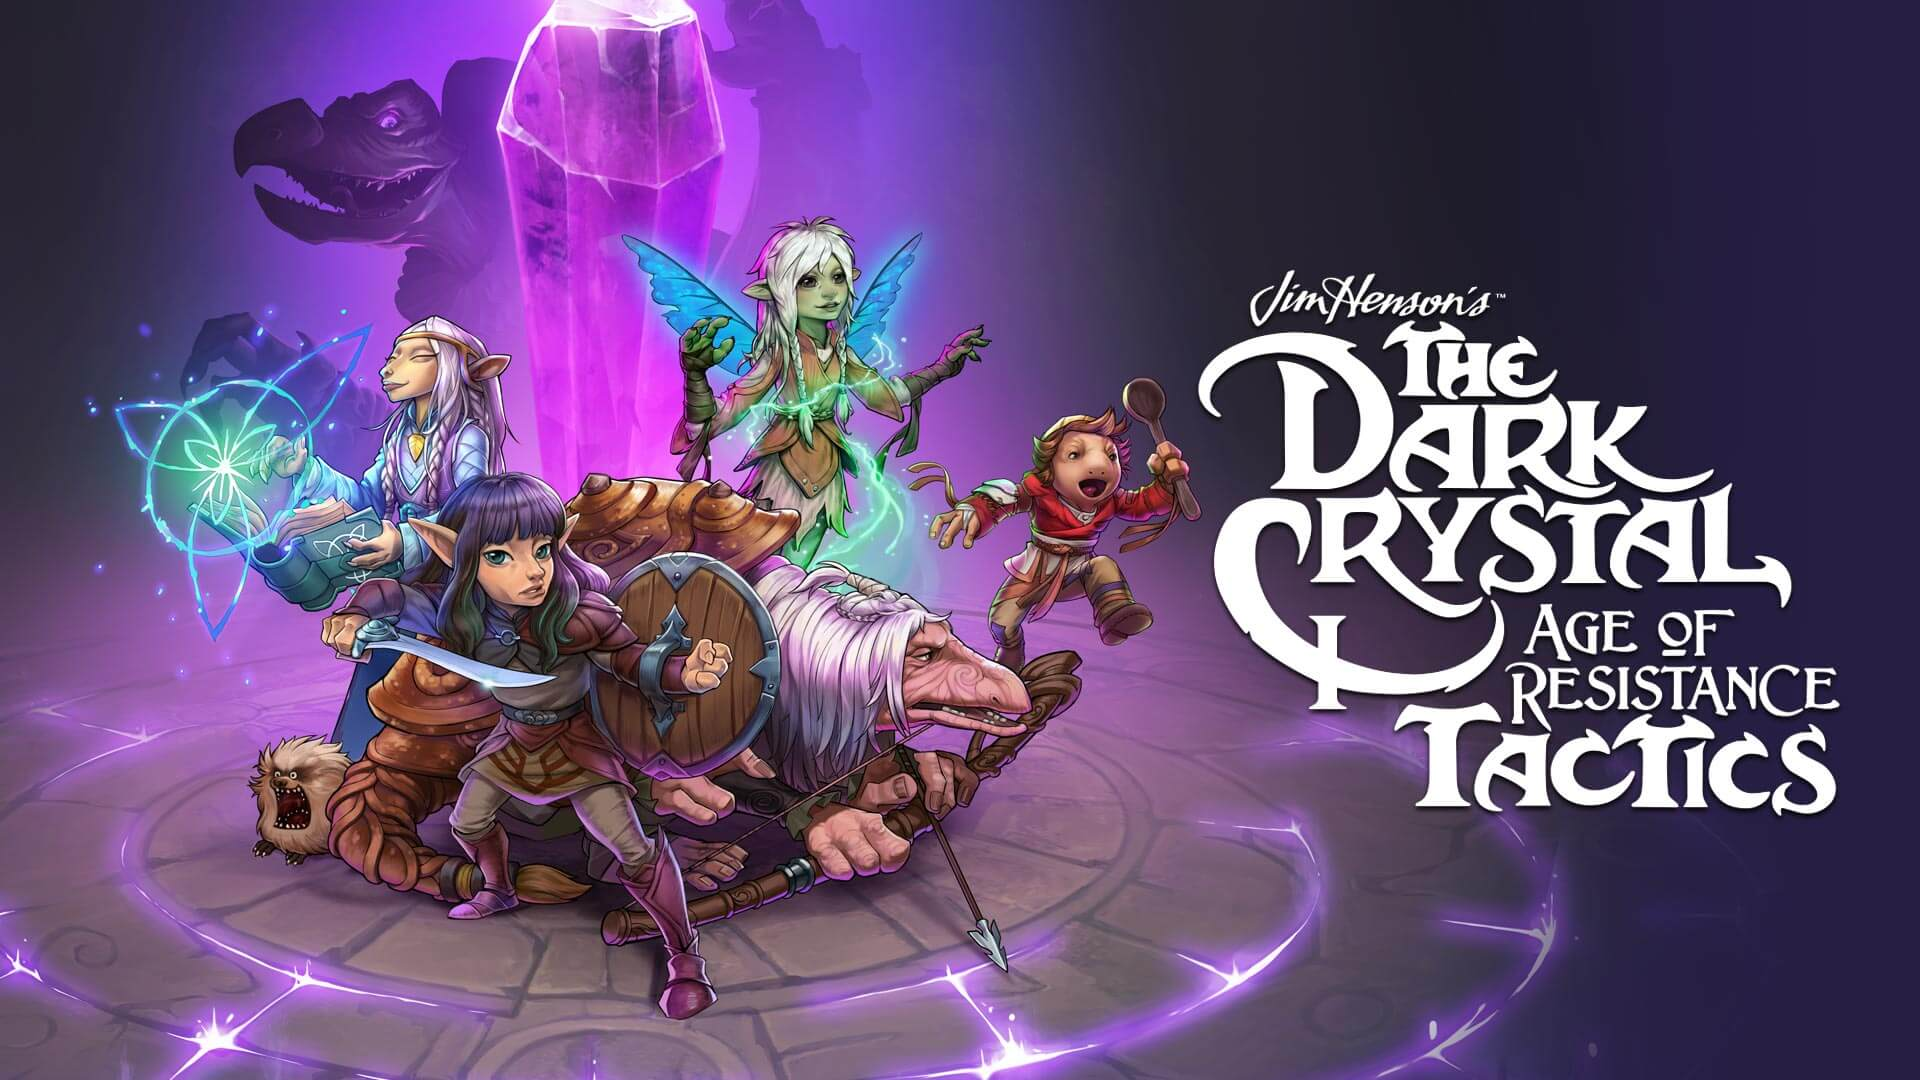 The Dark Crystal: Age of Resistance Tactics Free PC Download